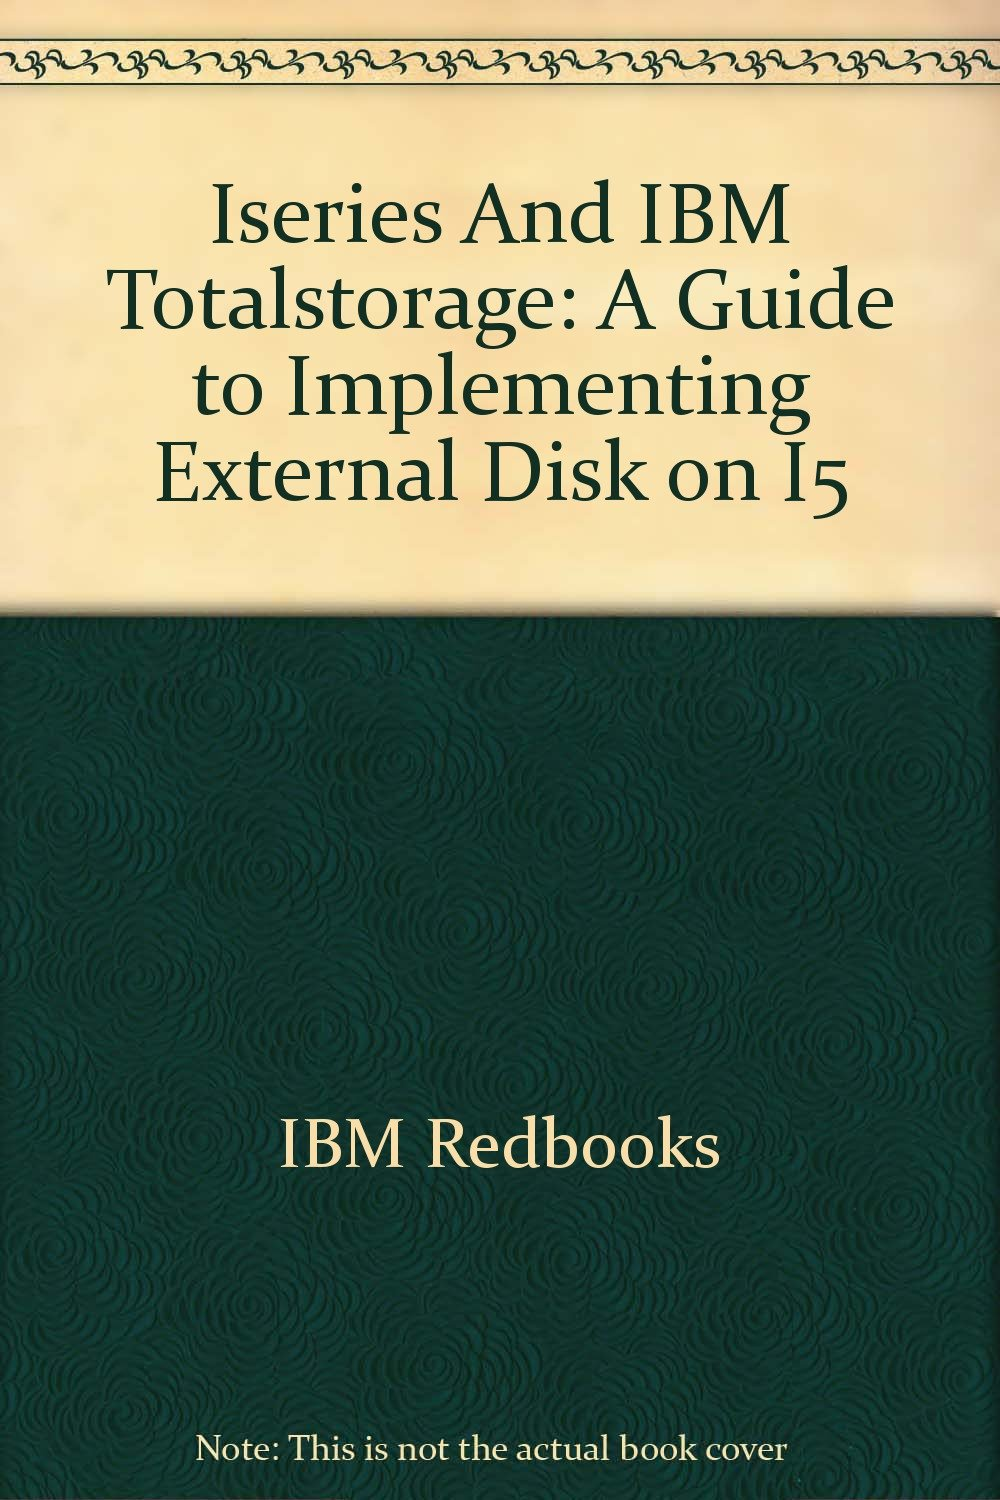 Iseries And IBM Totalstorage: A Guide to Implementing External Disk on I5 pdf